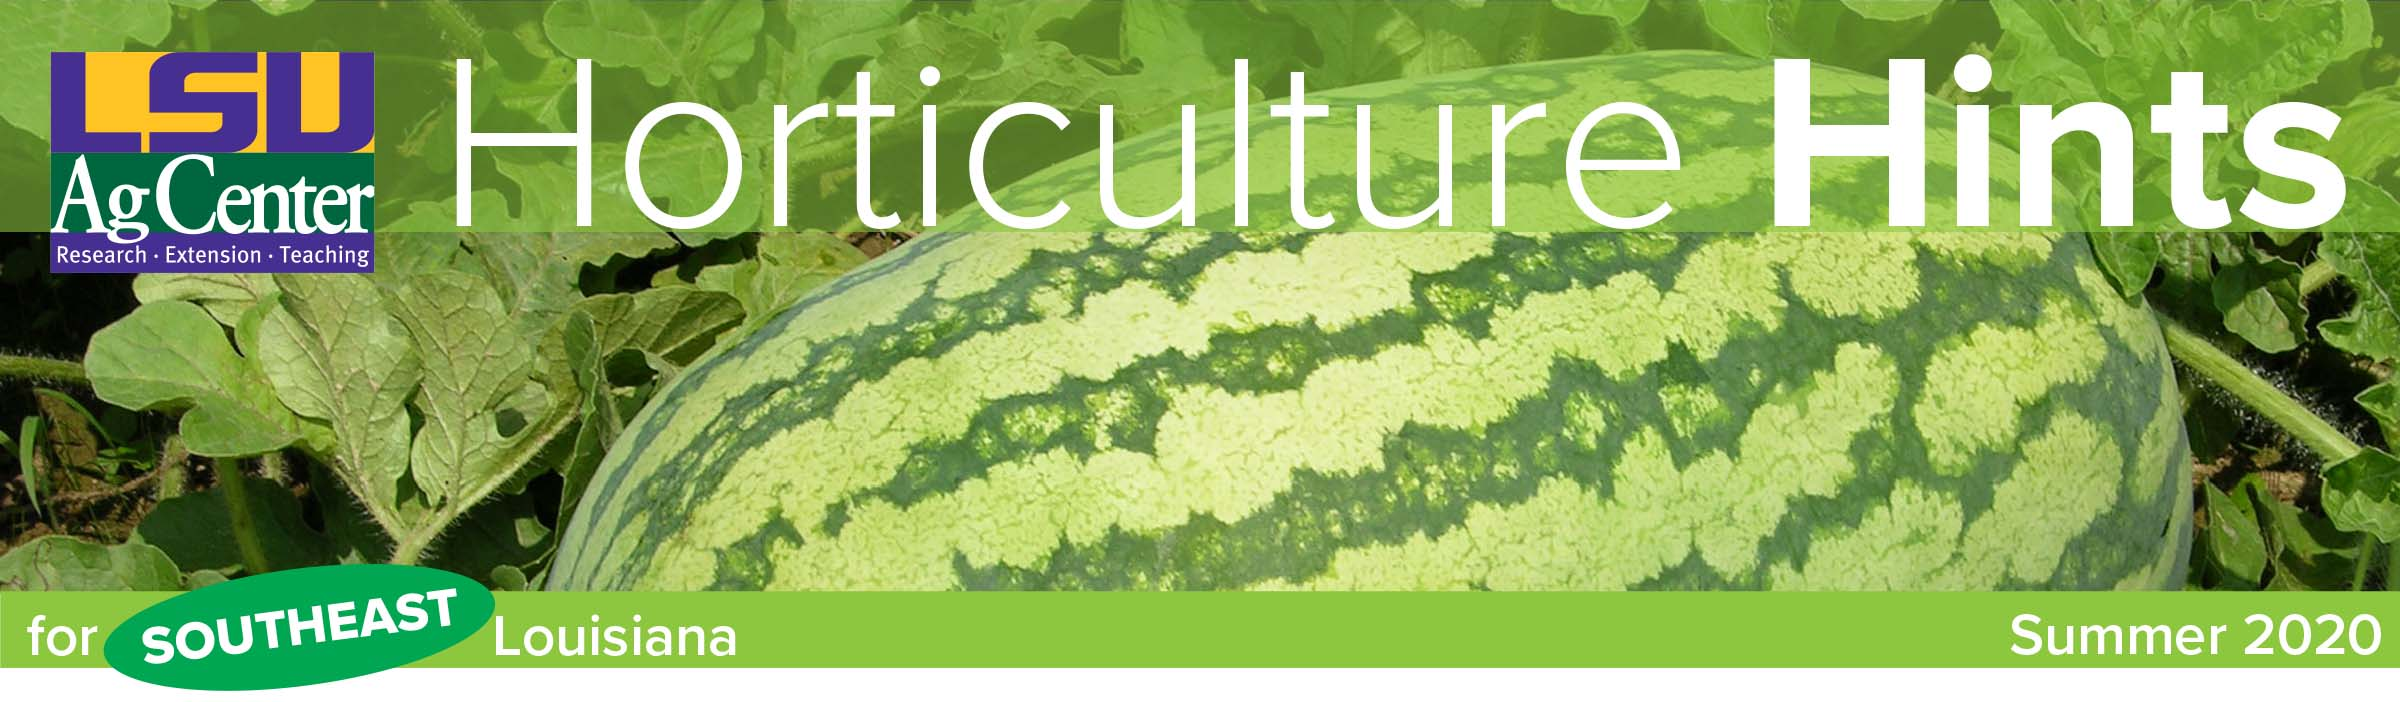 Banner for Horticulture Hints summer 2020